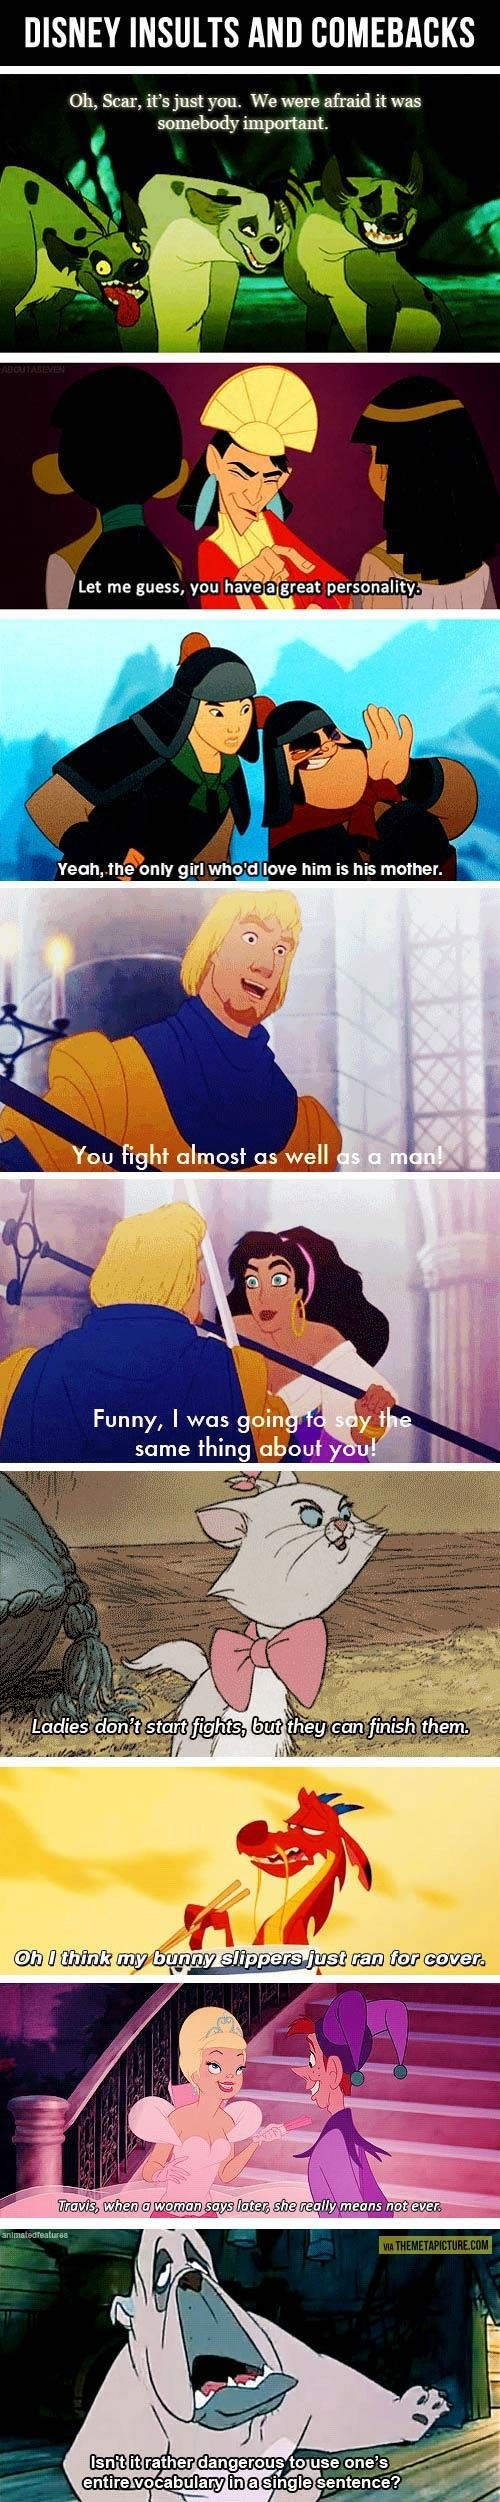 The best and wittiest Disney comebacks… - One Stop Humor: Funny Pictures and Videos!